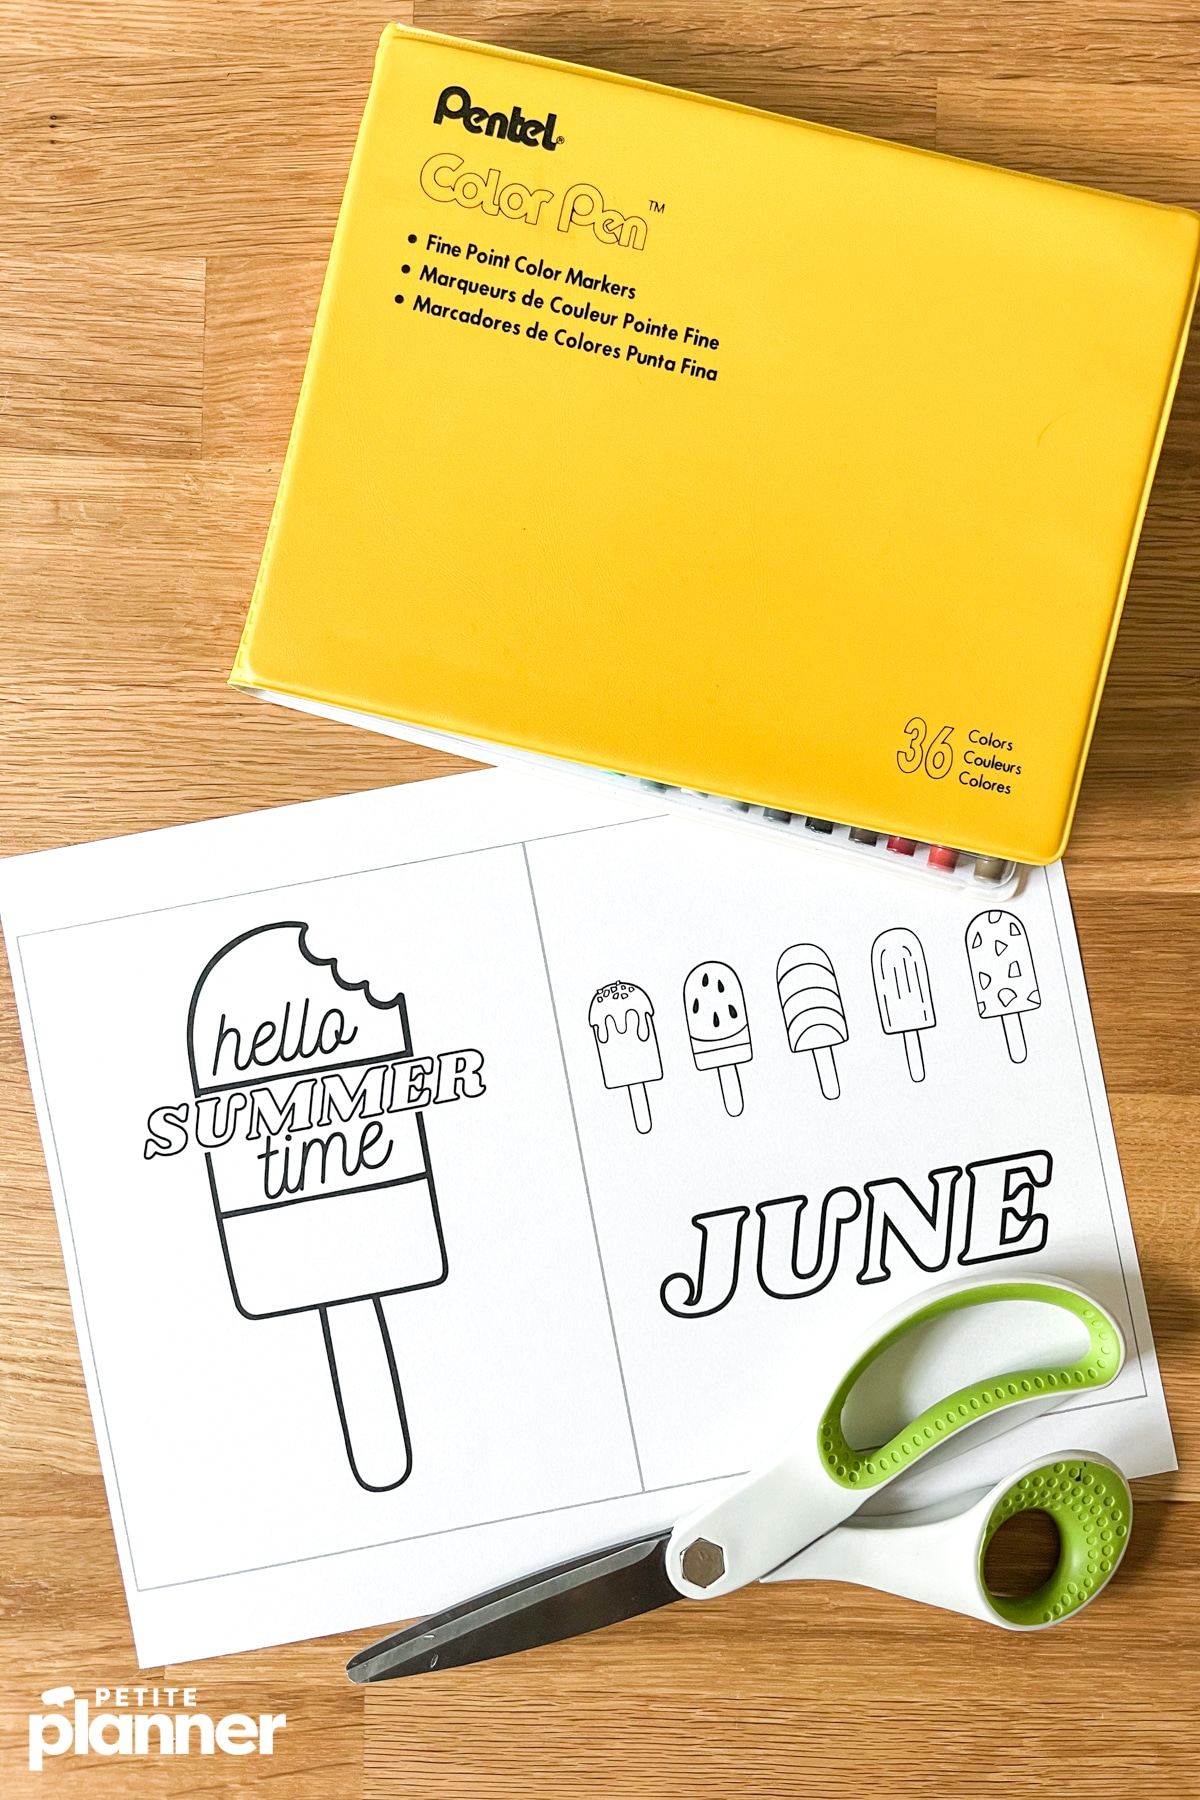 Printable bullet journal pages and Pentel marker case